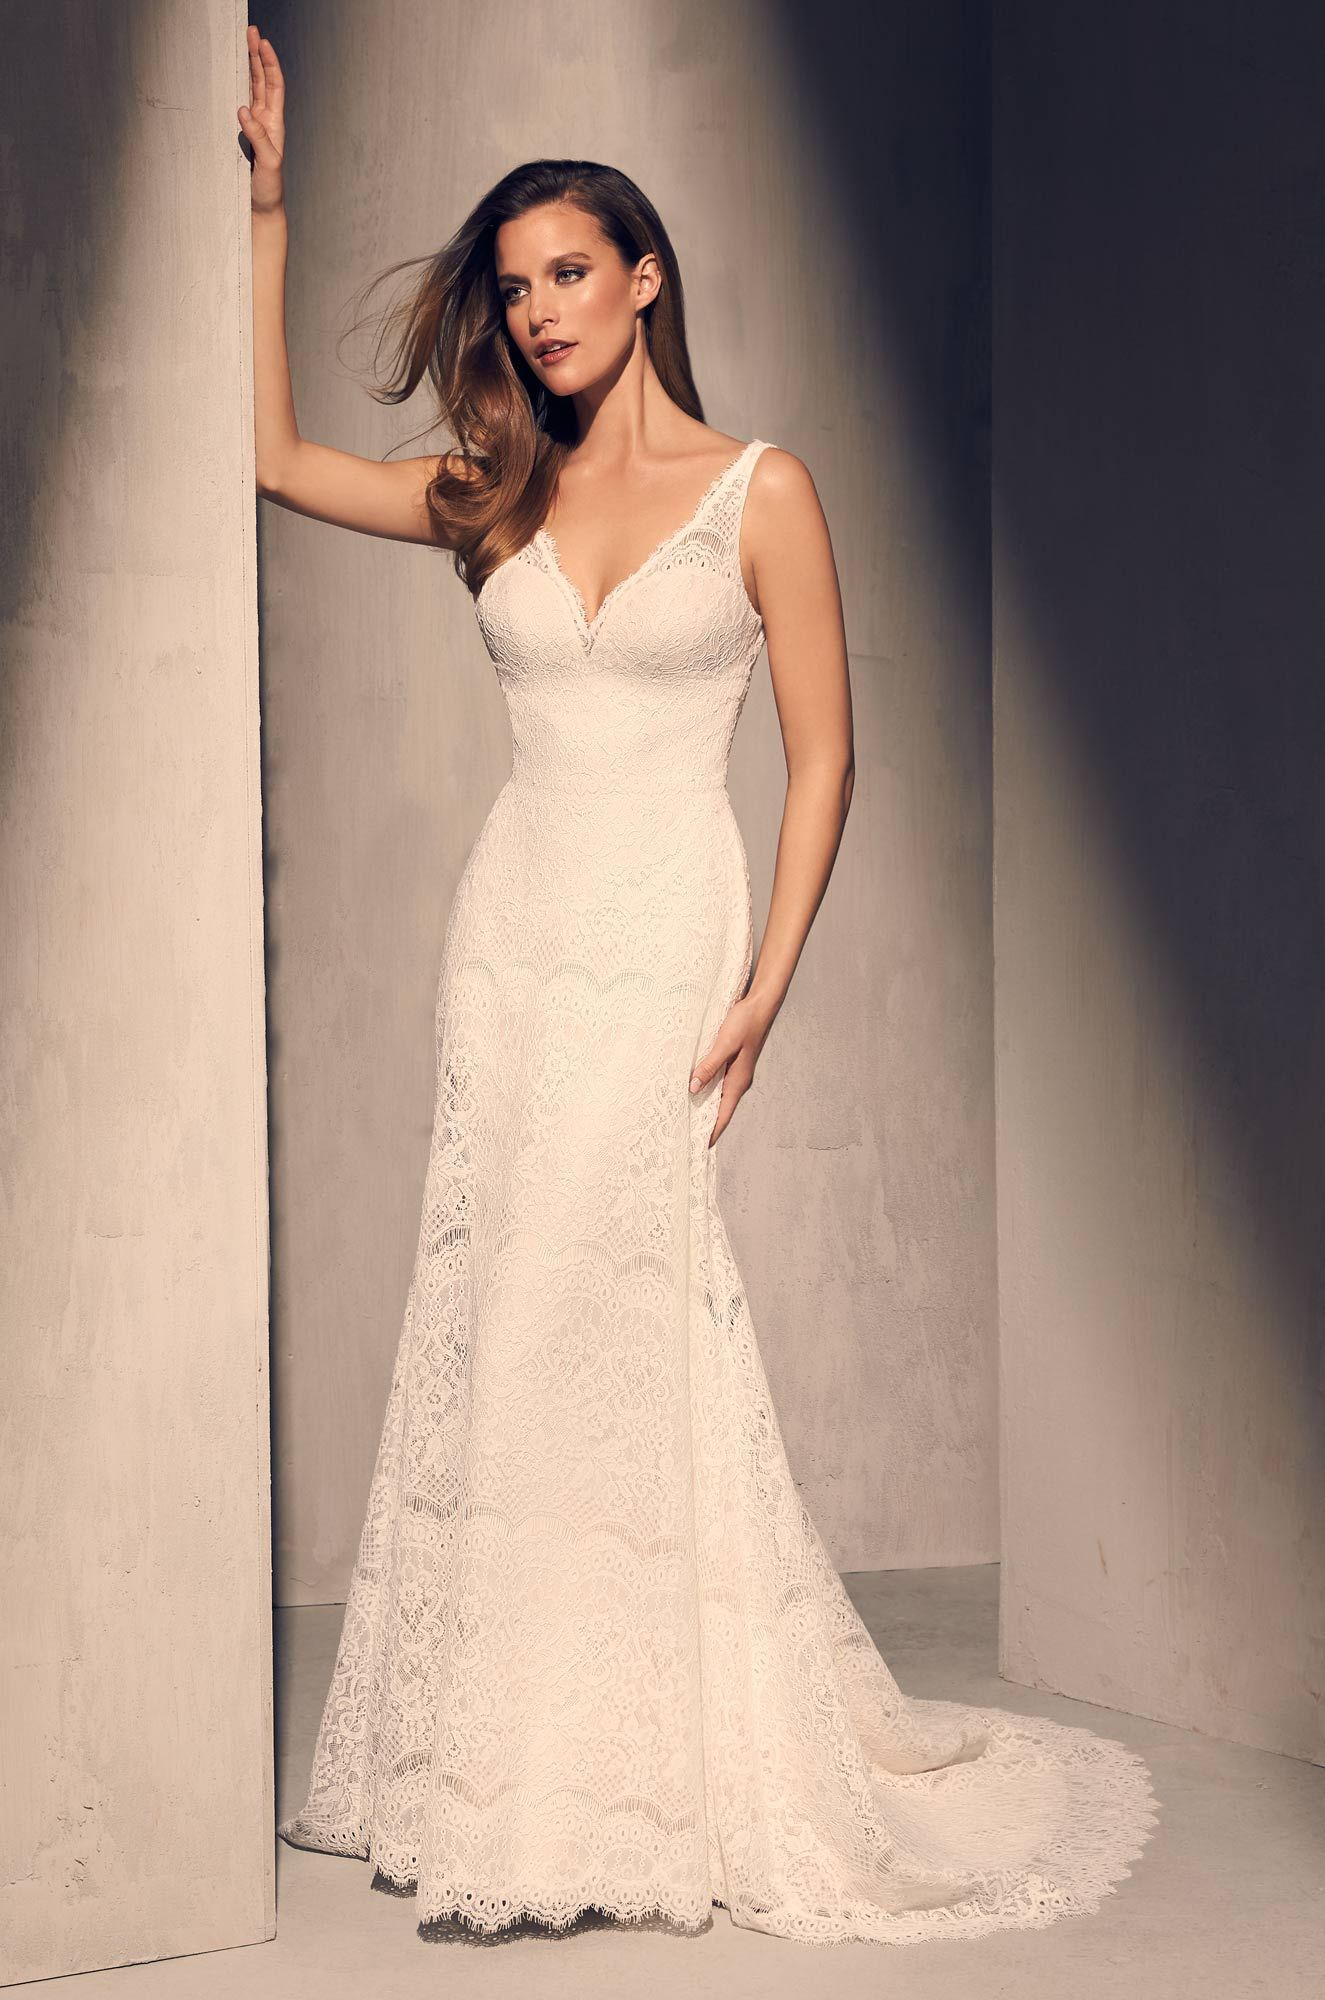 Designer Wedding Dresses Made With Love in Canada  69f22b9aaddb